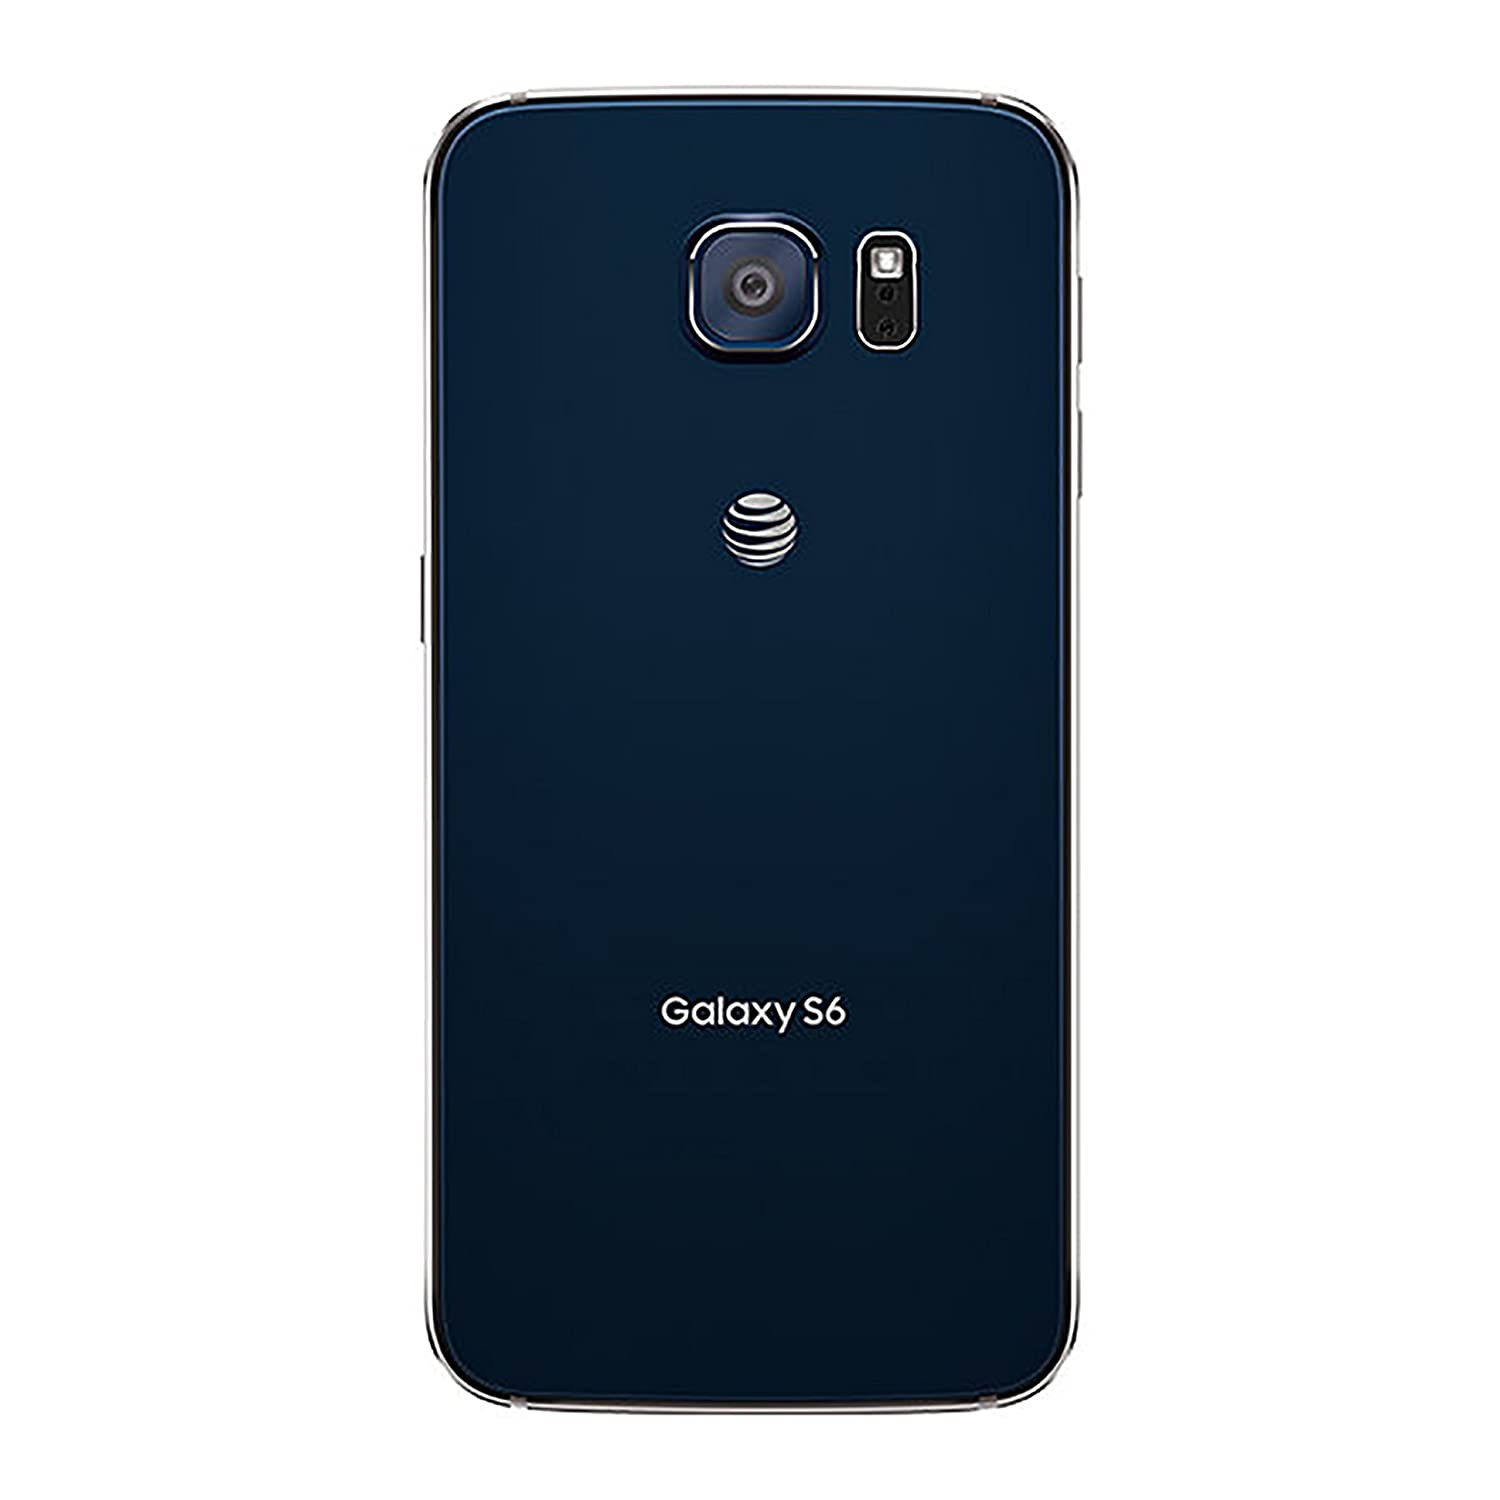 People are selling samsung galaxy s6 clones - Amazon Com Samsung Galaxy S6 Sm G920a Unlocked Smartphone 32gb 1 5ghz Octa Core Black Sapphire Cell Phones Accessories